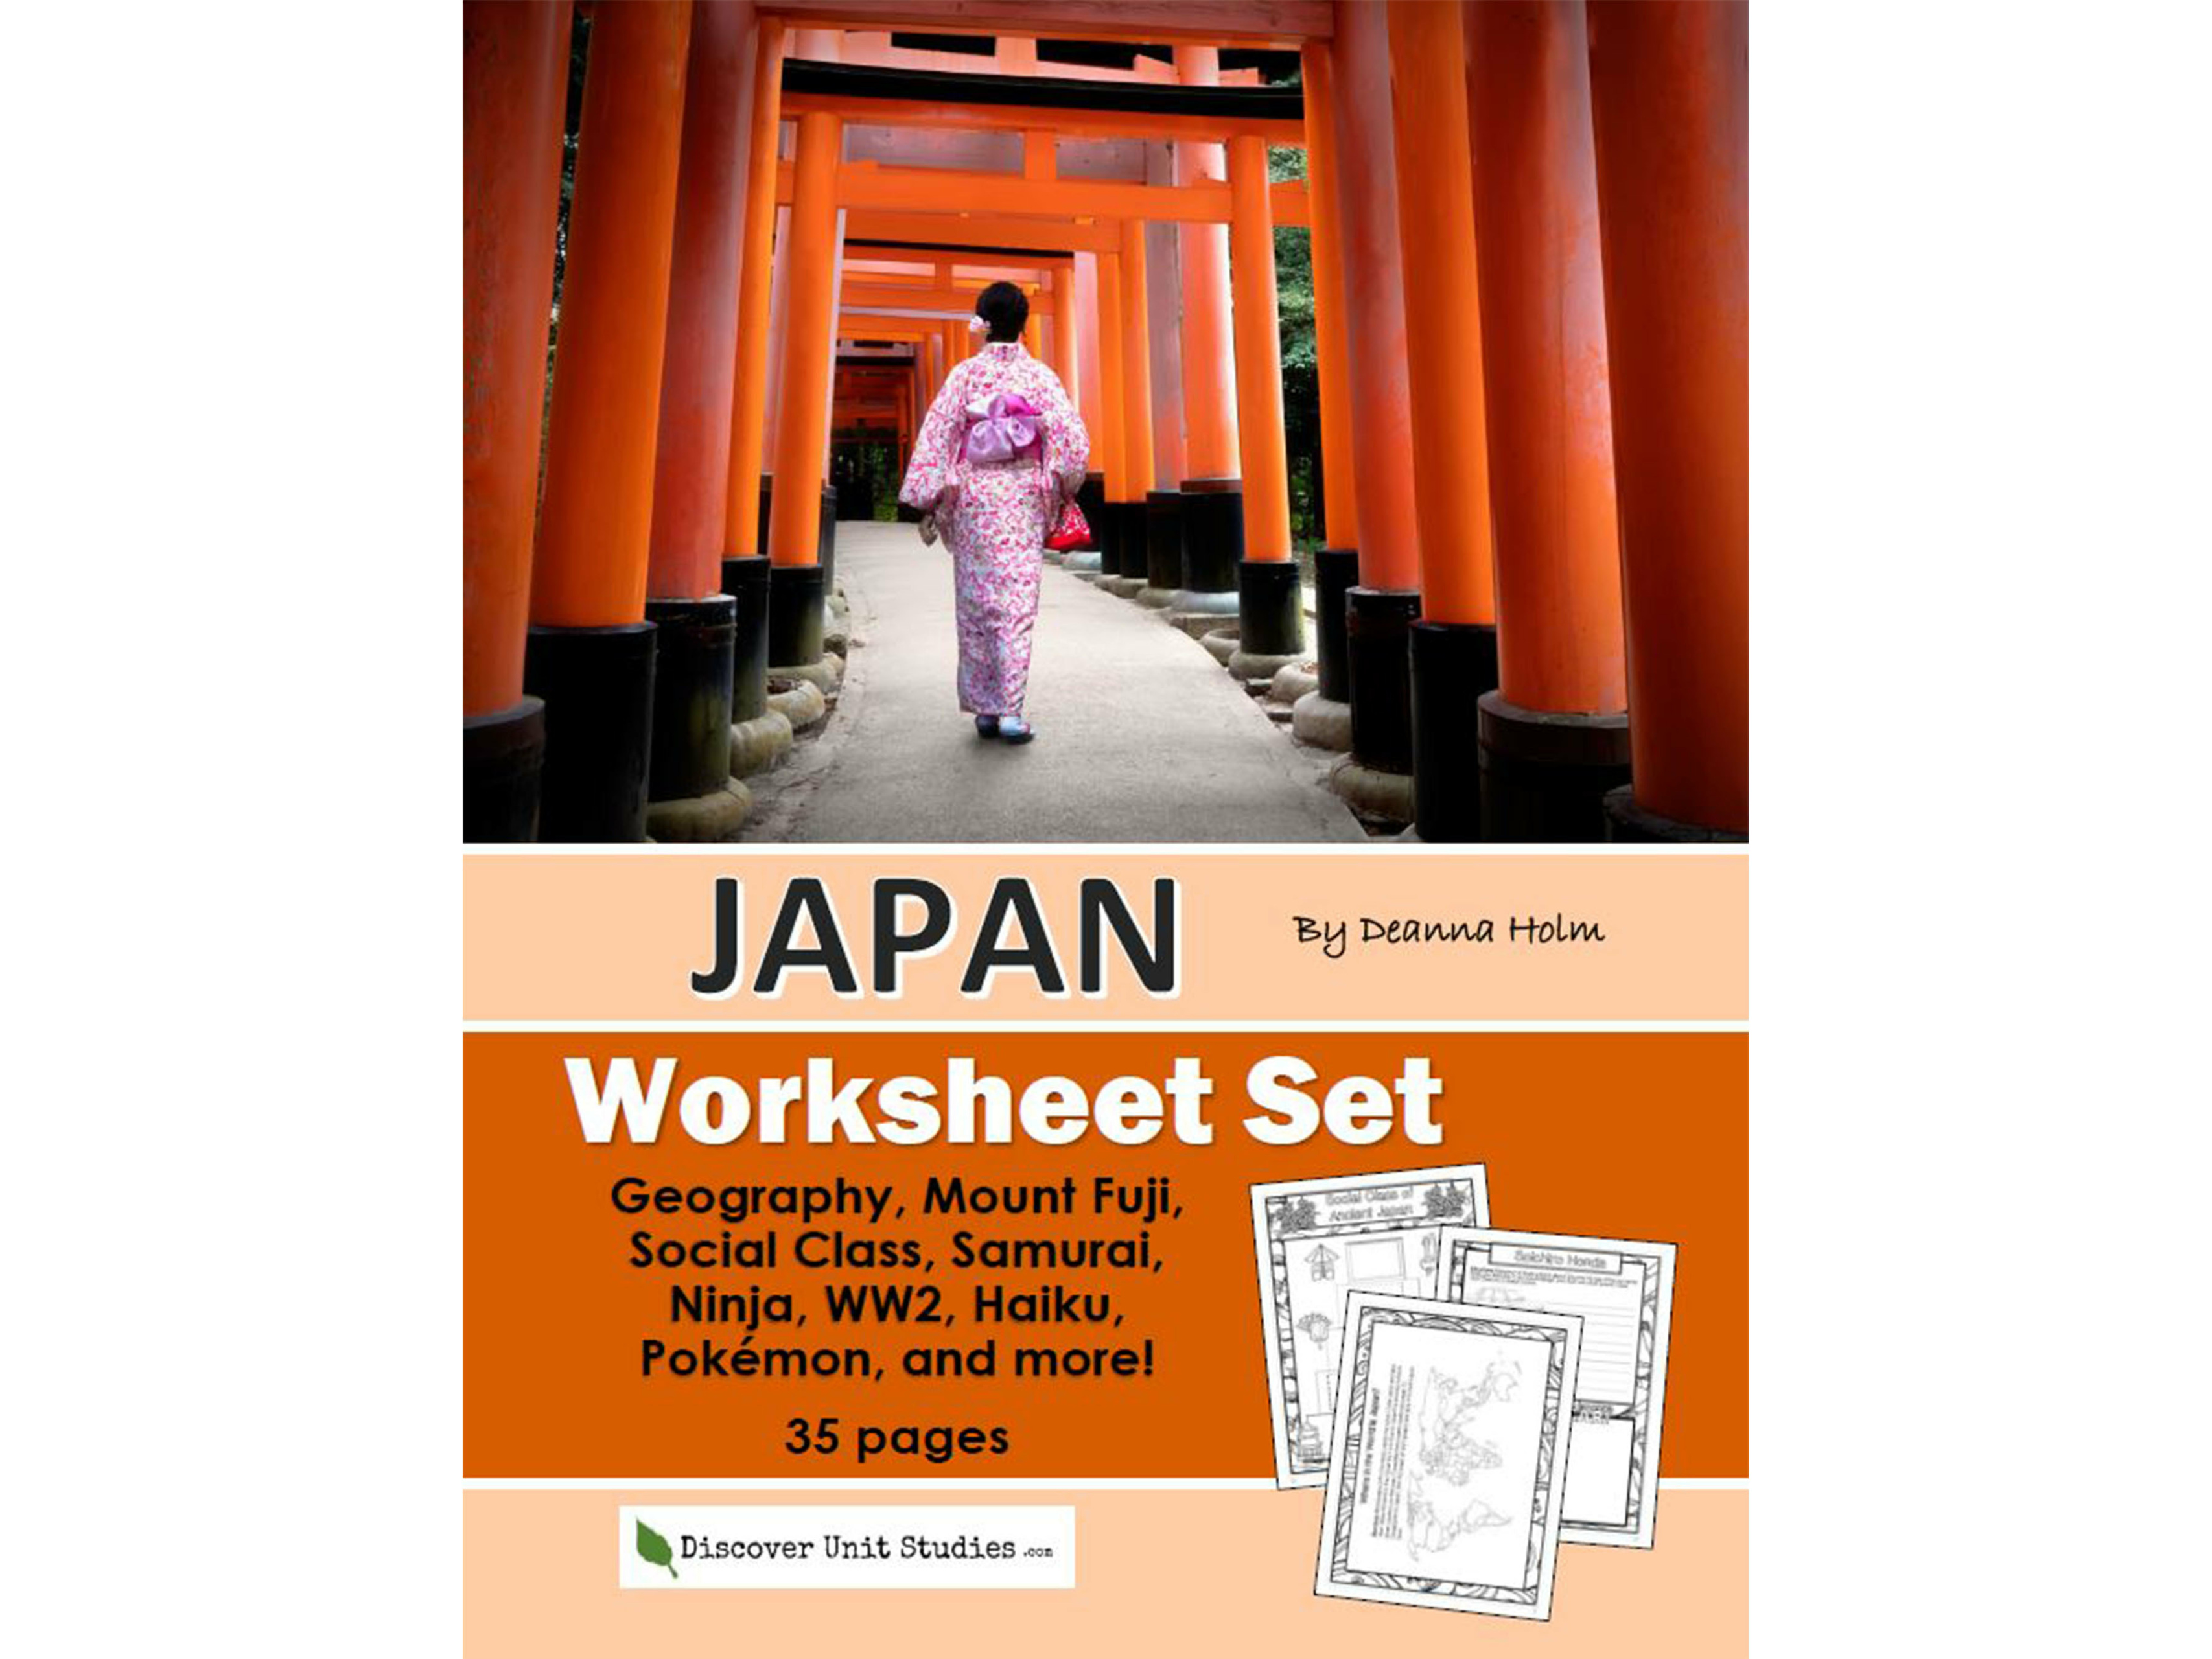 Japan Worksheet Set